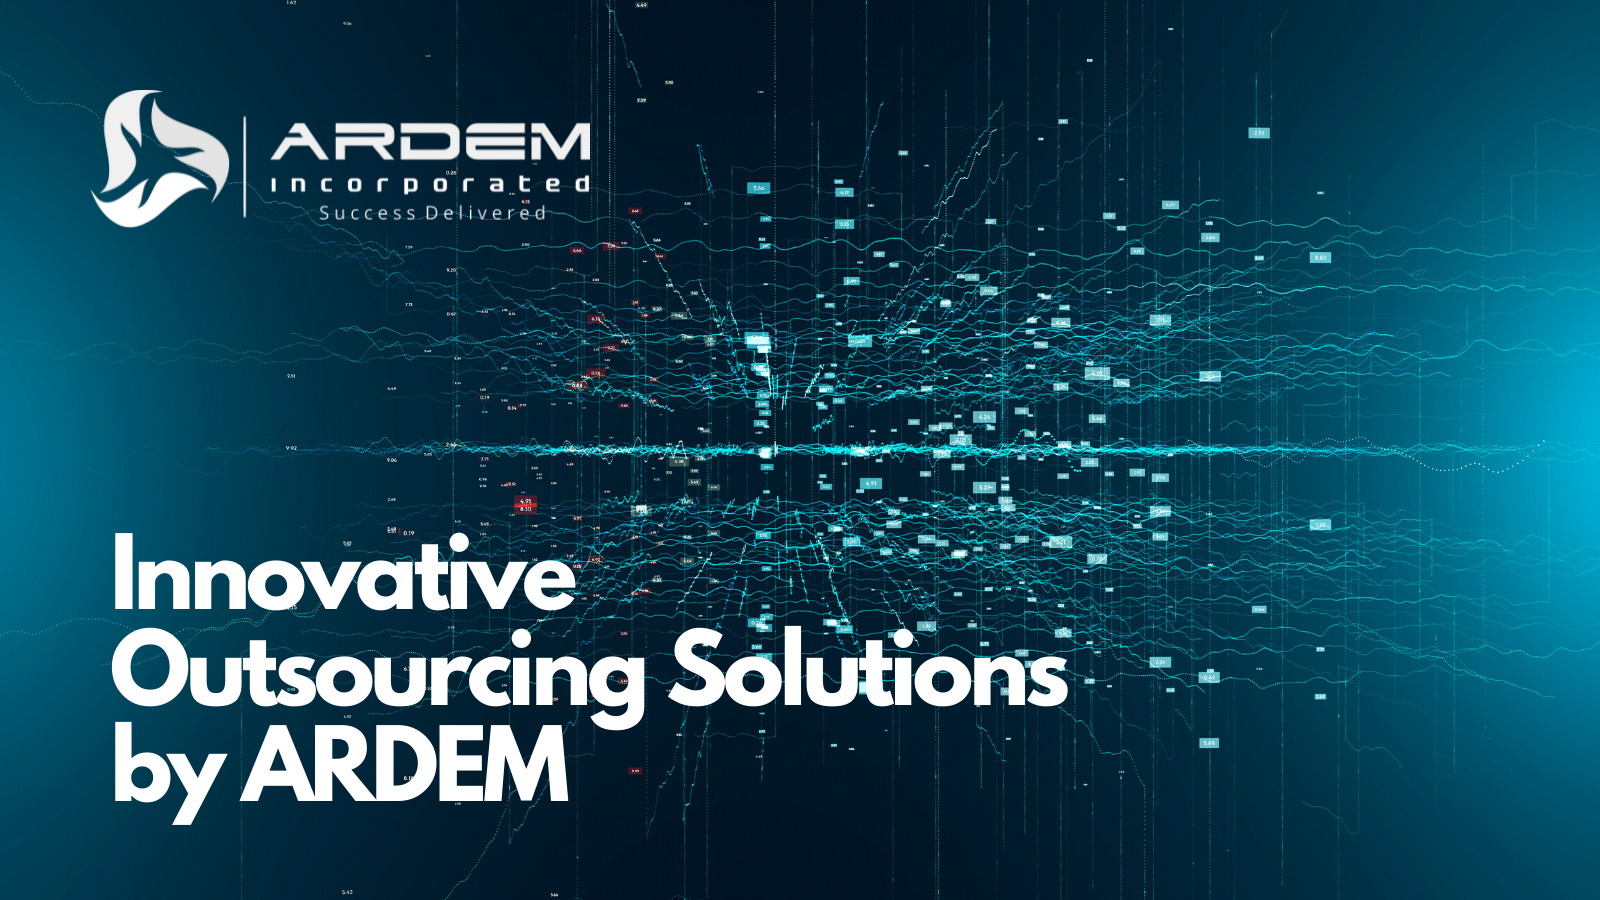 ARDEM Outsourcing